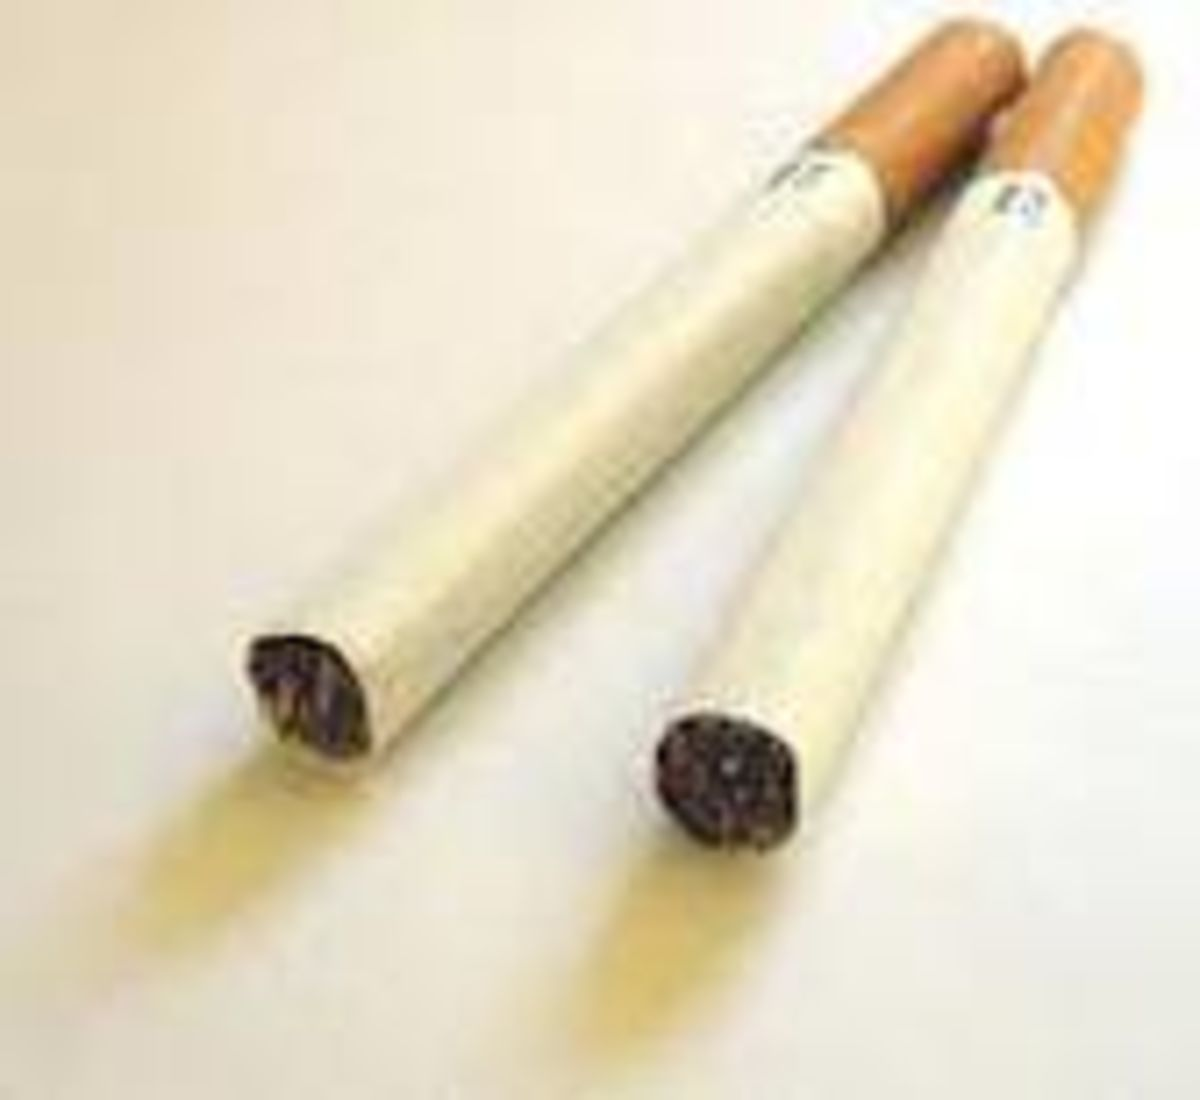 Electronic Cigarette: Next Teenager Addiction? Smoking Cure